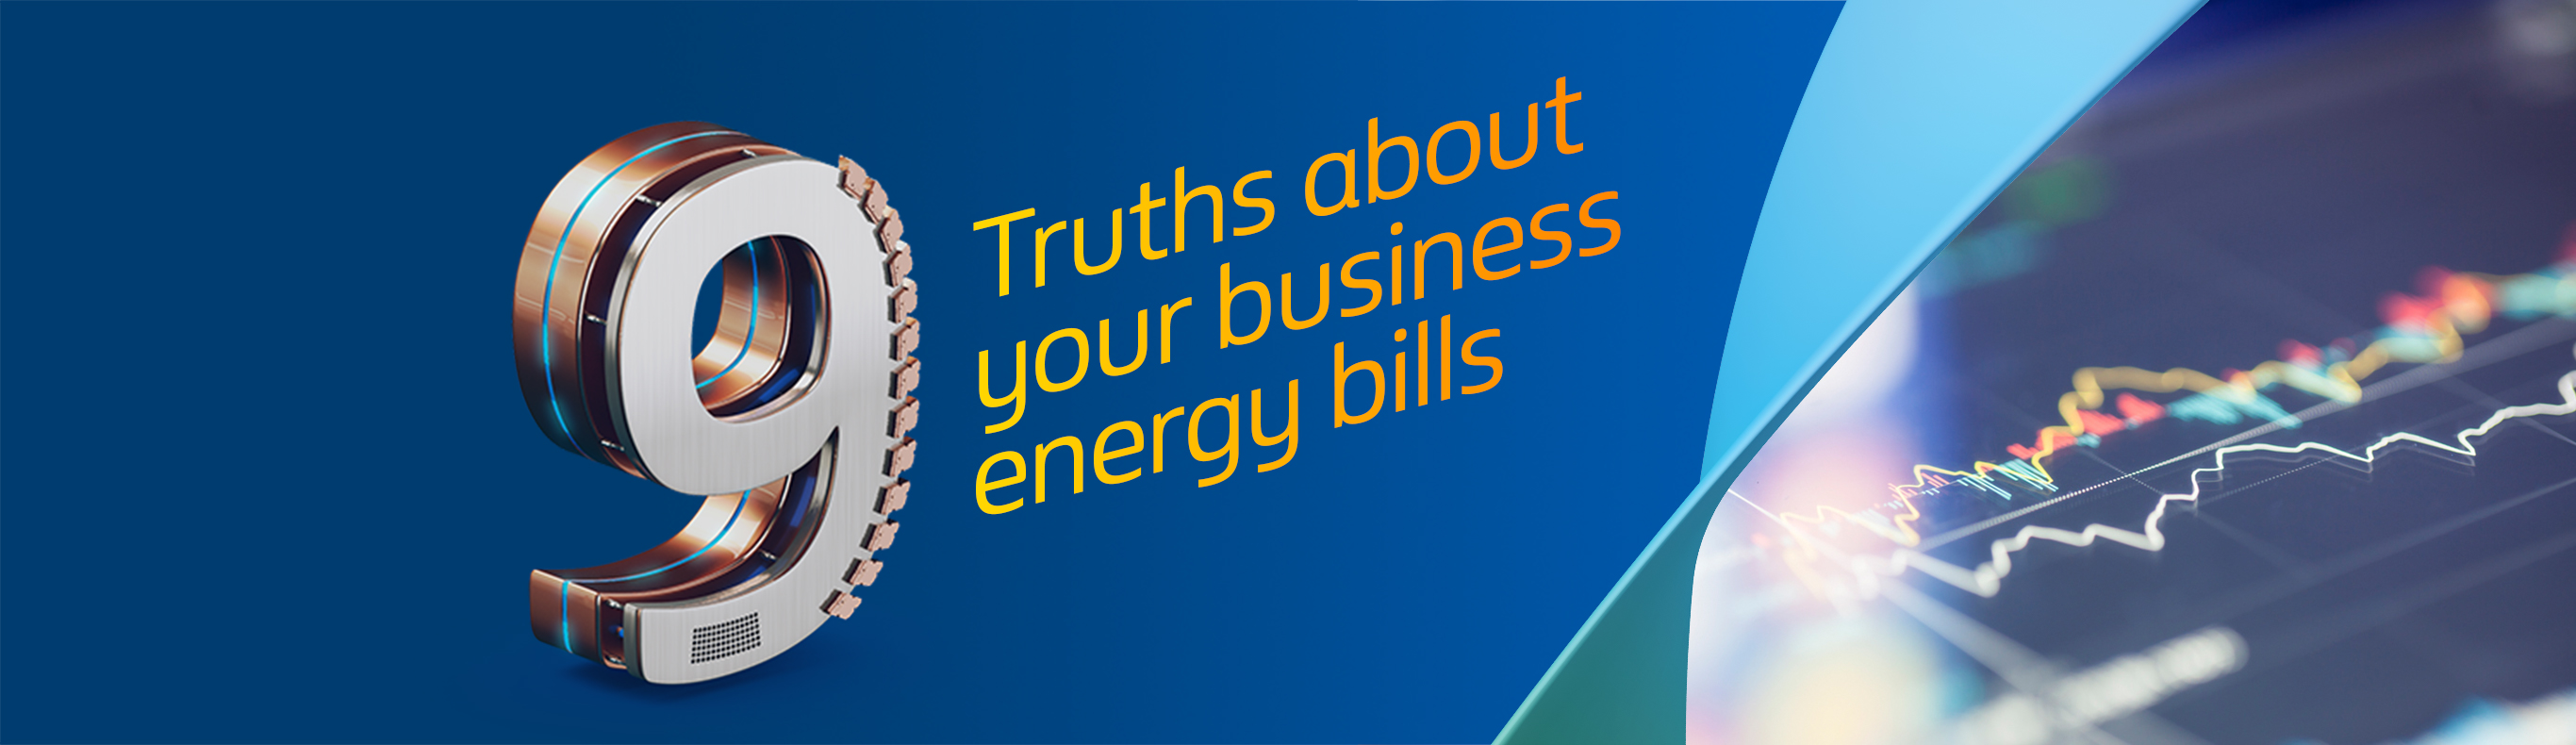 9 truths about your business energy bills